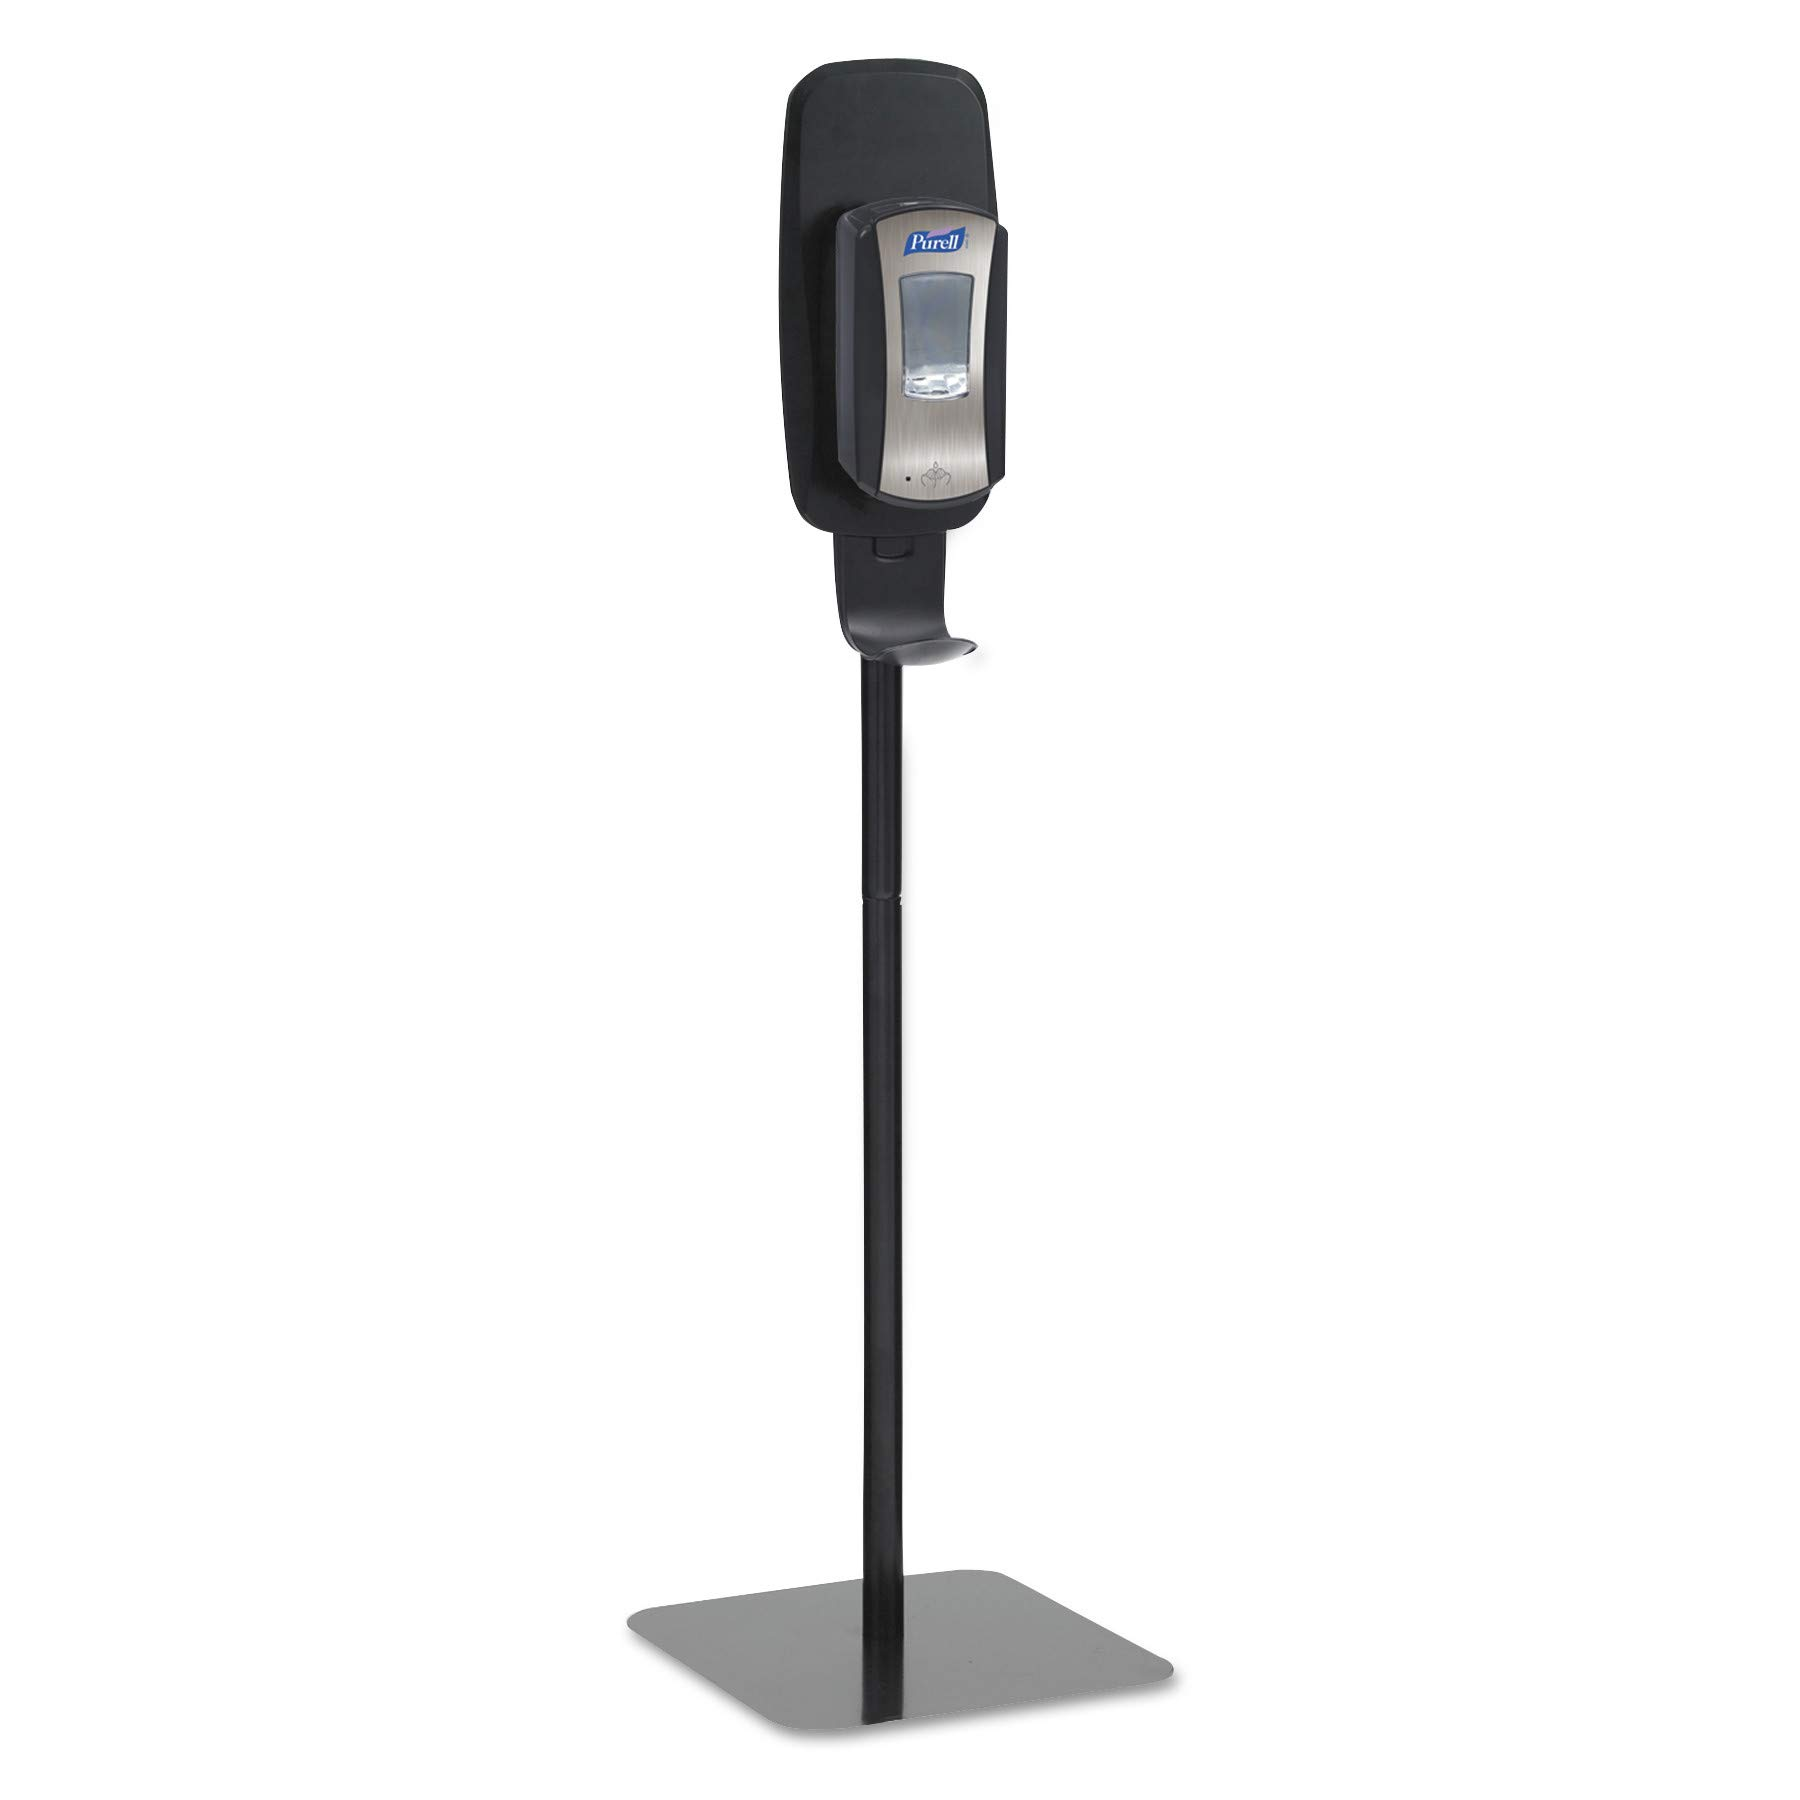 PURELL Hand Sanitizer Dispenser Floor Stand, Black, Floor Stand for use with PURELL LTX or TFX Touch-Free Sanitizer Dispensers – 2425-DS